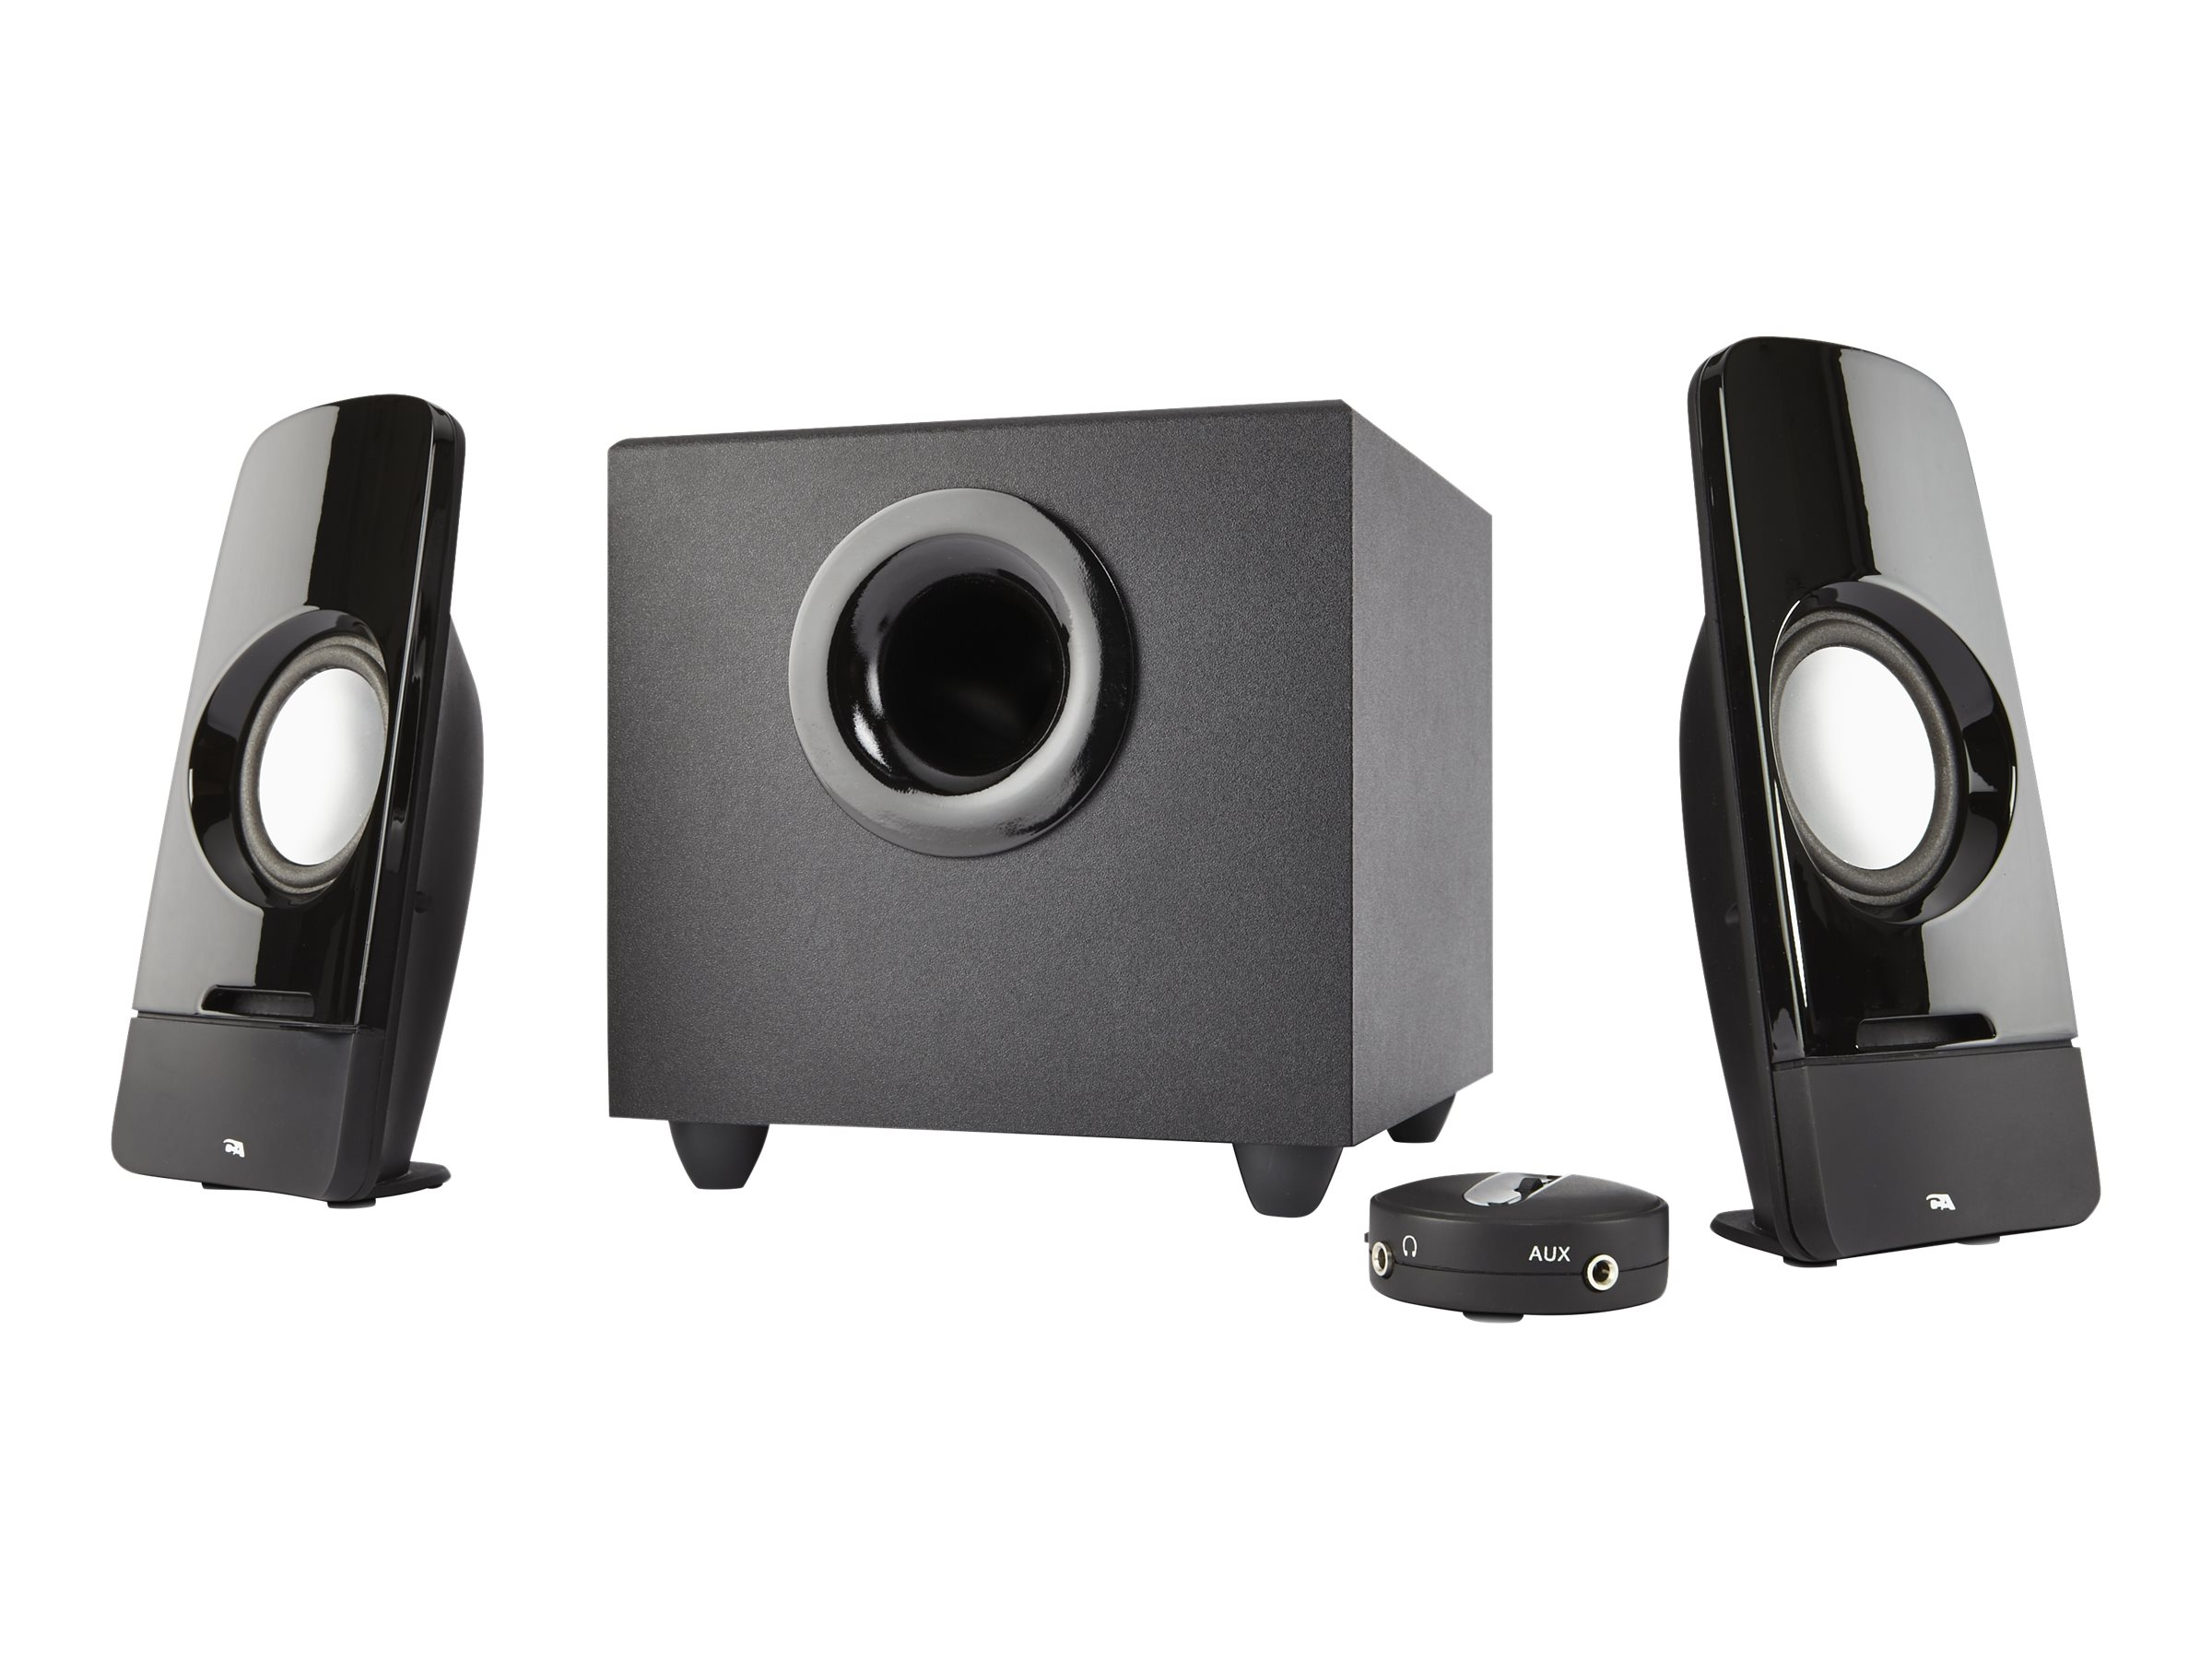 Cyber Acoustics Curve Series Control Pod Subwoofer 2.1 Powered Speaker System